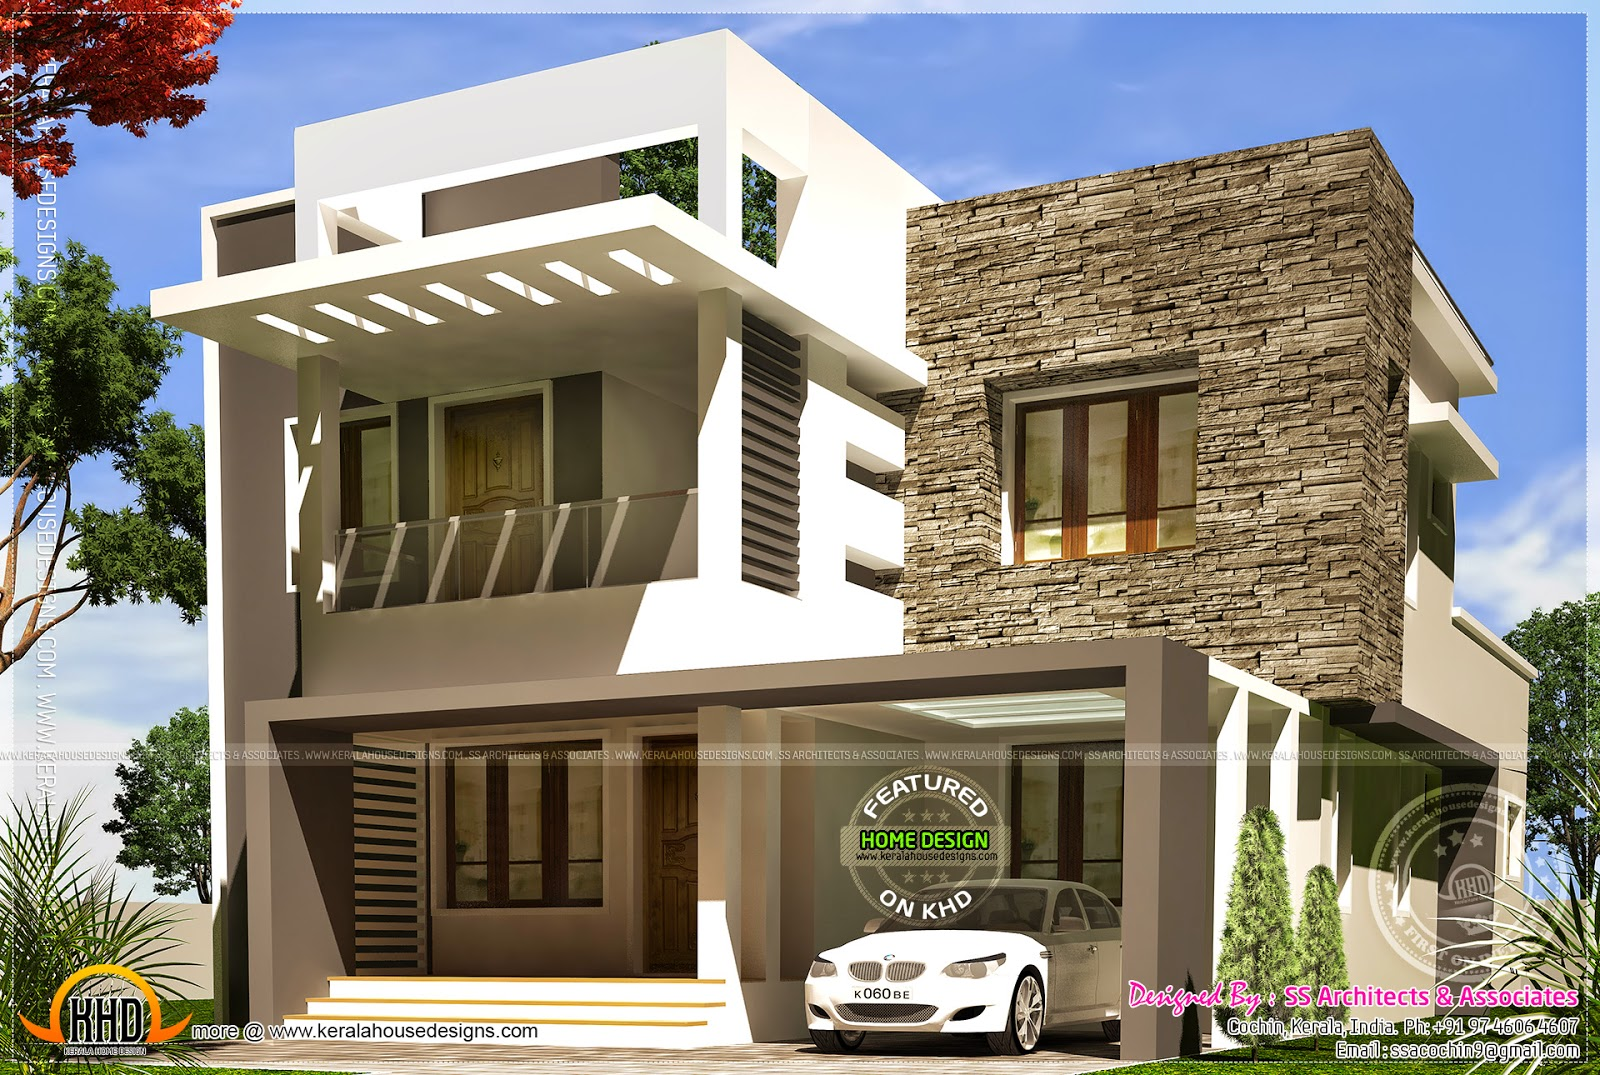 Beautiful Contemporary Villa In 1700 Kerala Home: villa designs india